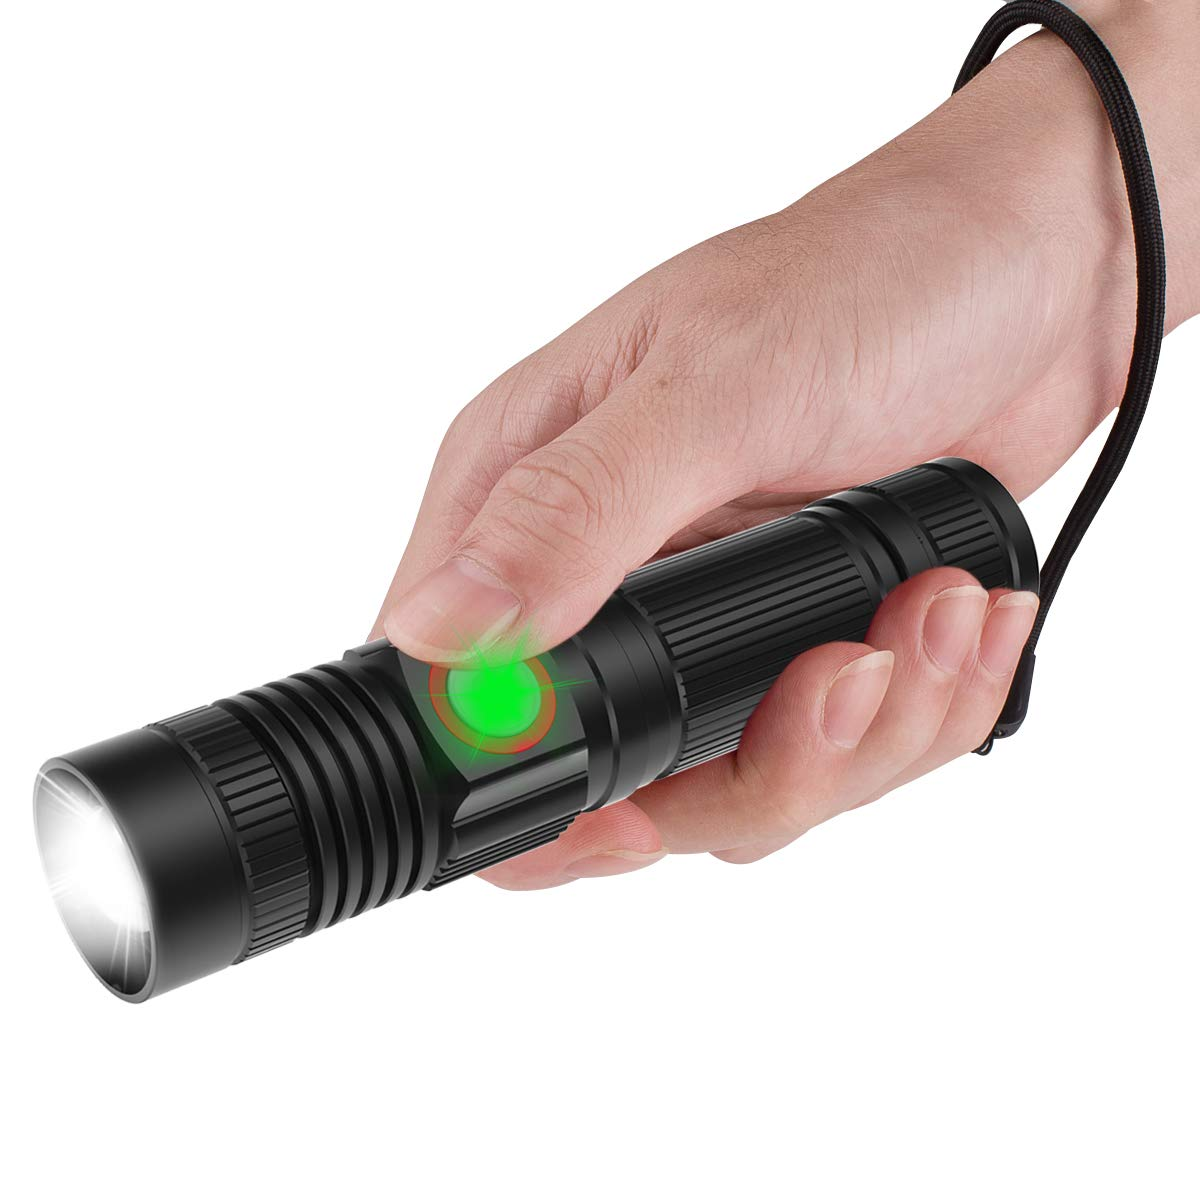 Very bright rechargable led flashlight